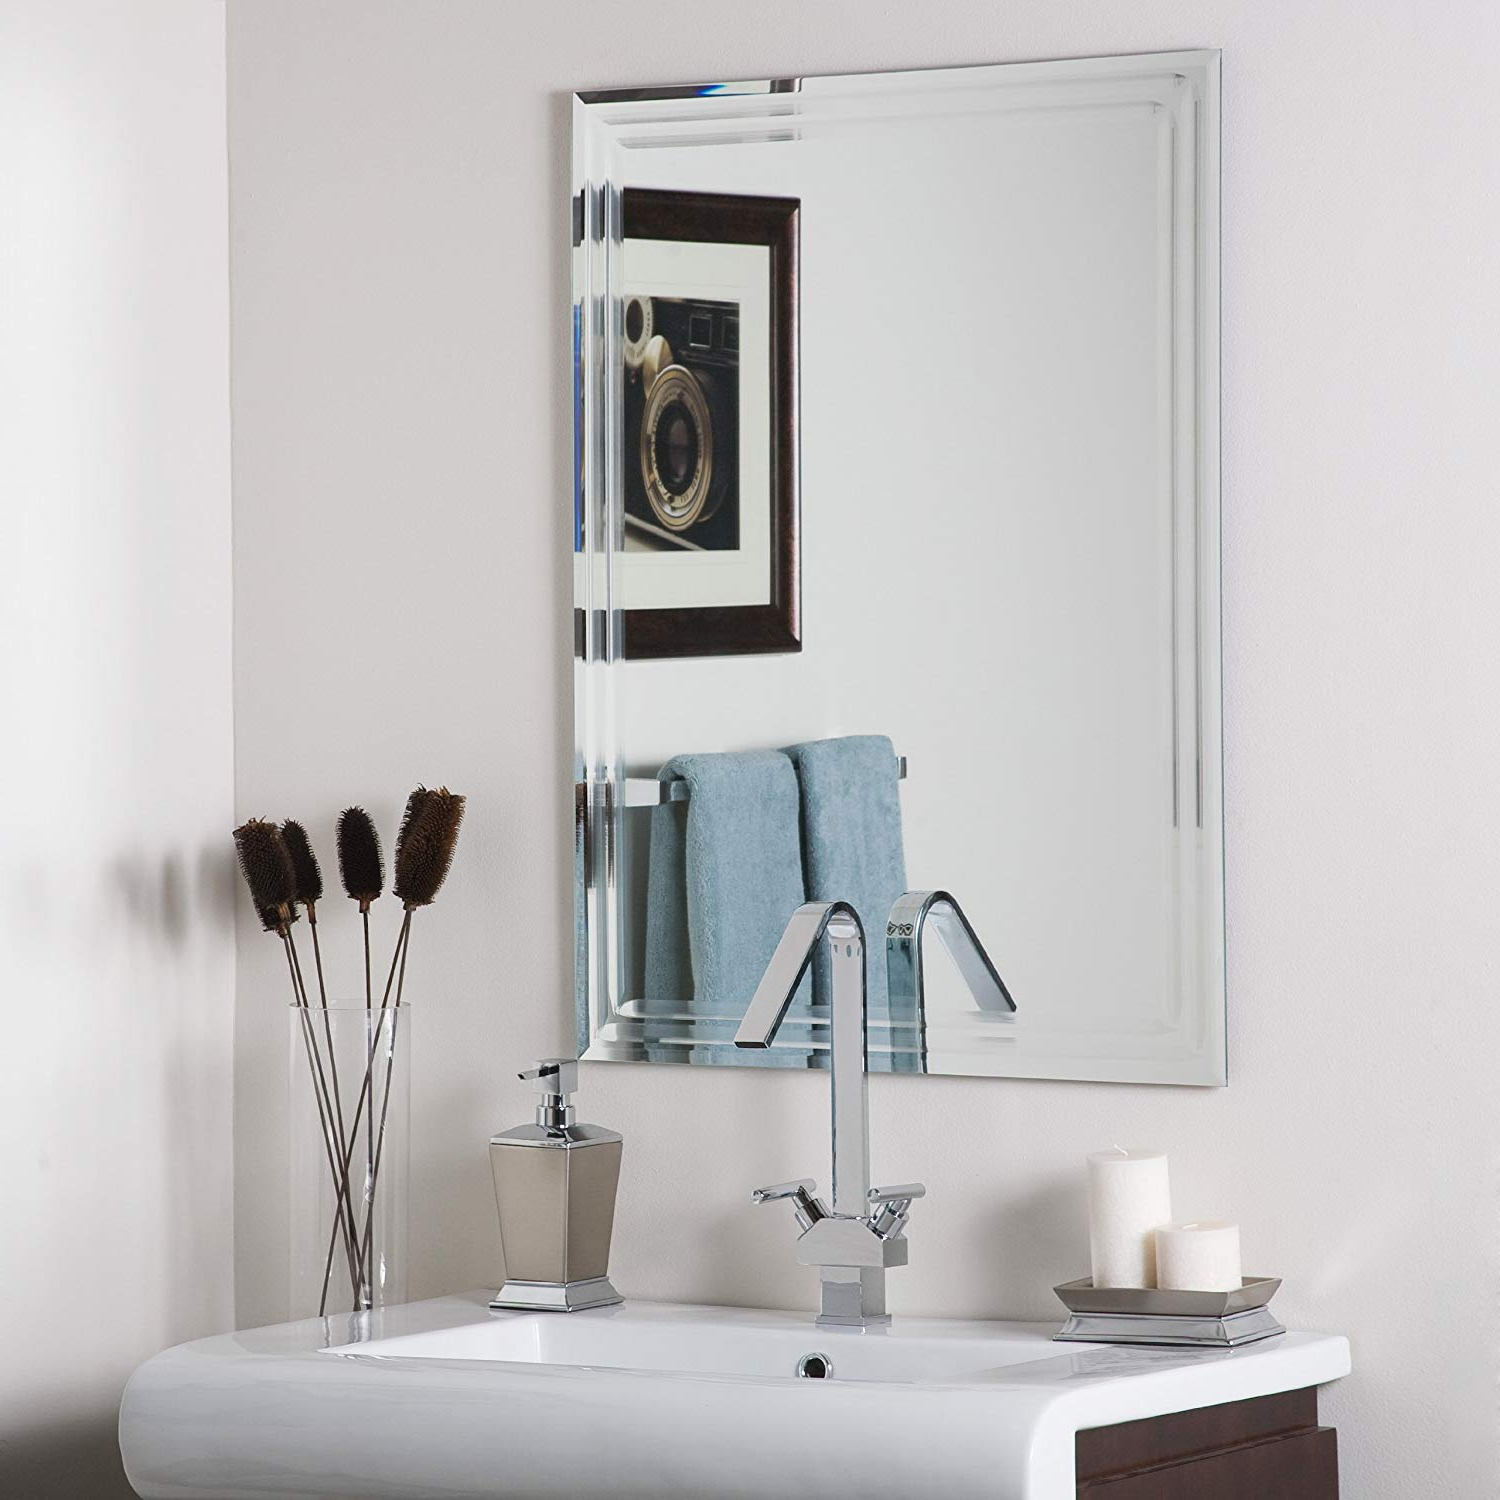 Most Recent Decor Wonderland Frameless Tri Bevel Wall Mirror With Regard To Wall Mirror For Bathroom (View 5 of 20)